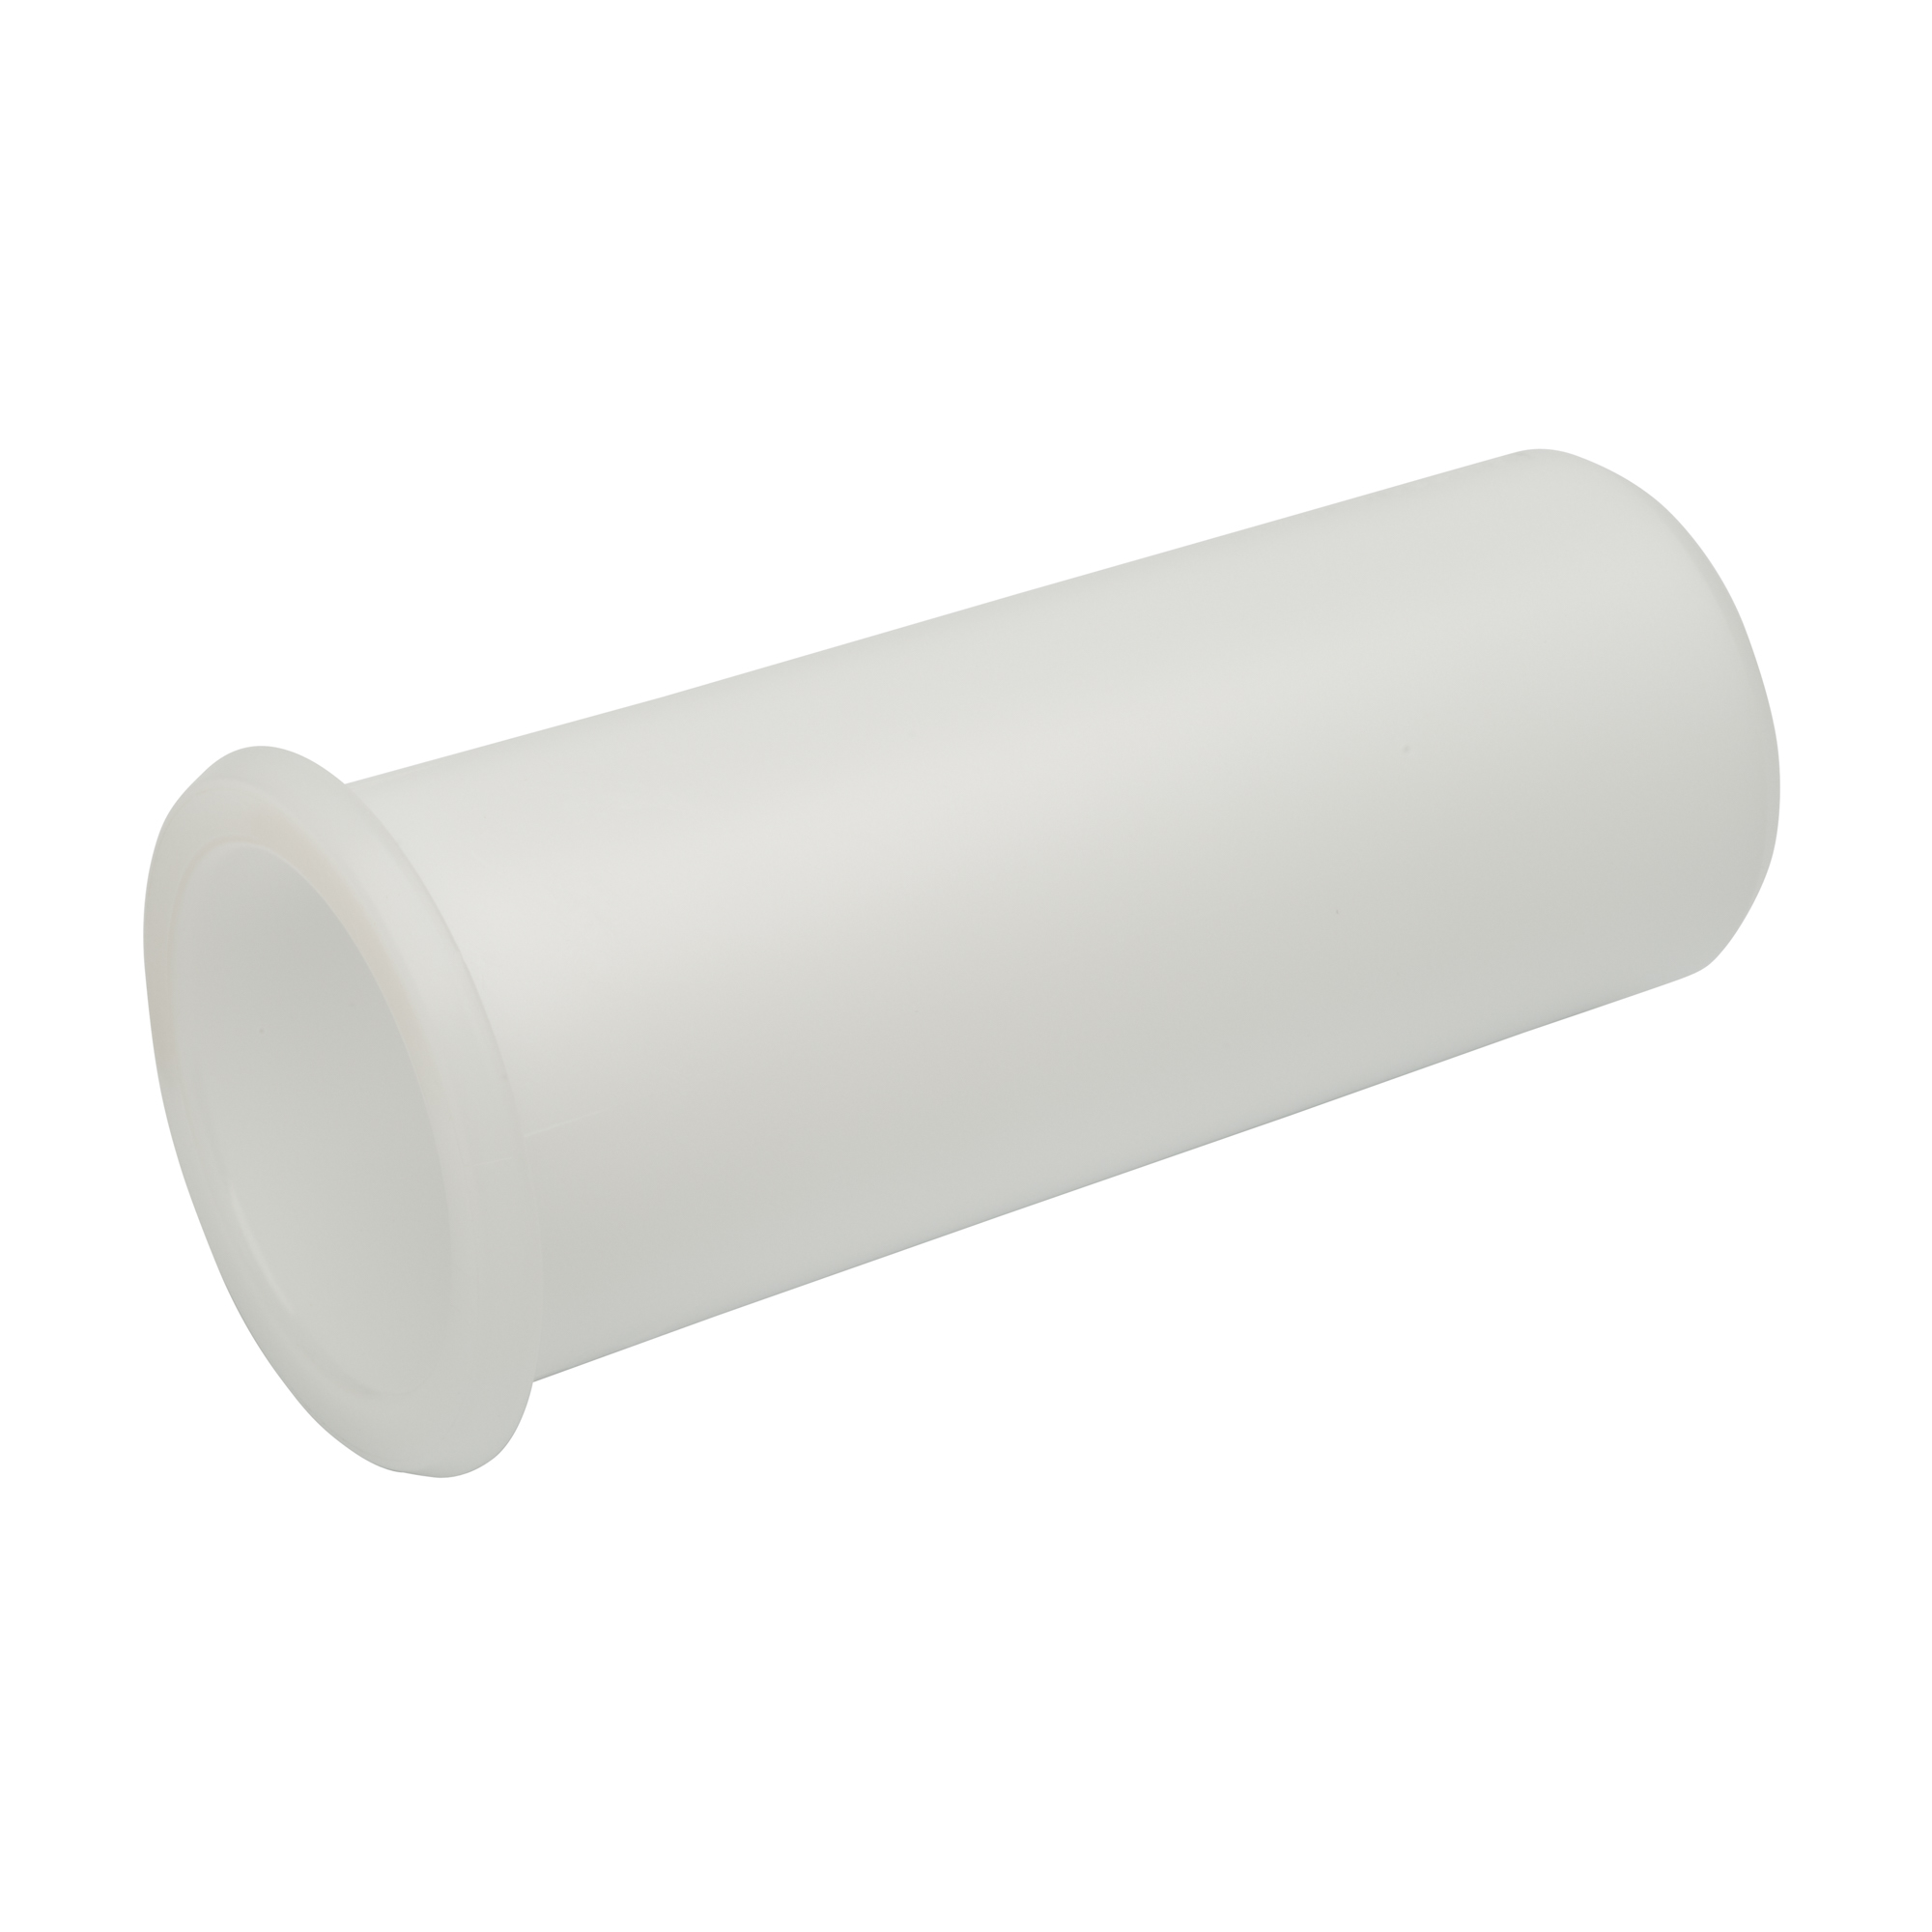 Pipe Liner - 50